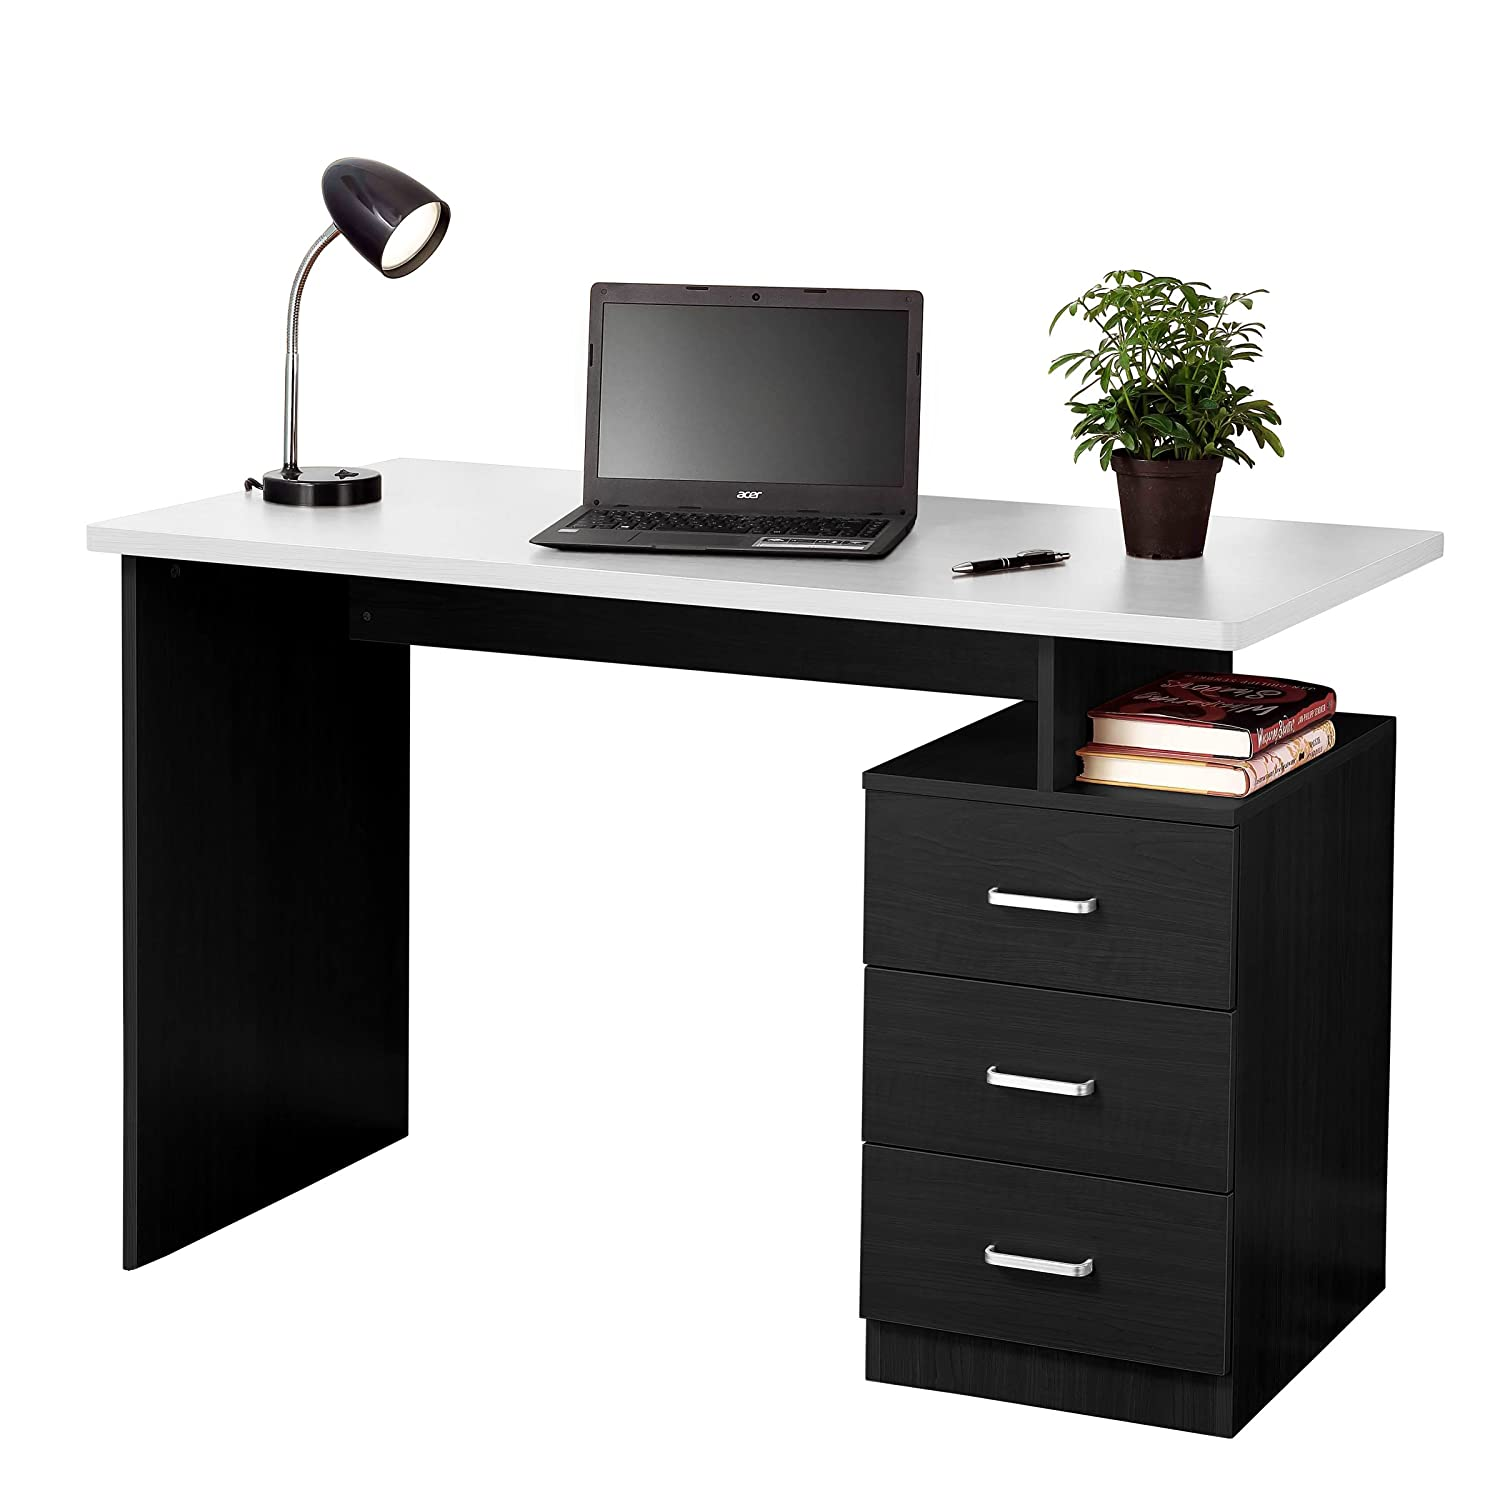 office desk wood table light bekant computer equipped furniture quality ikea black be